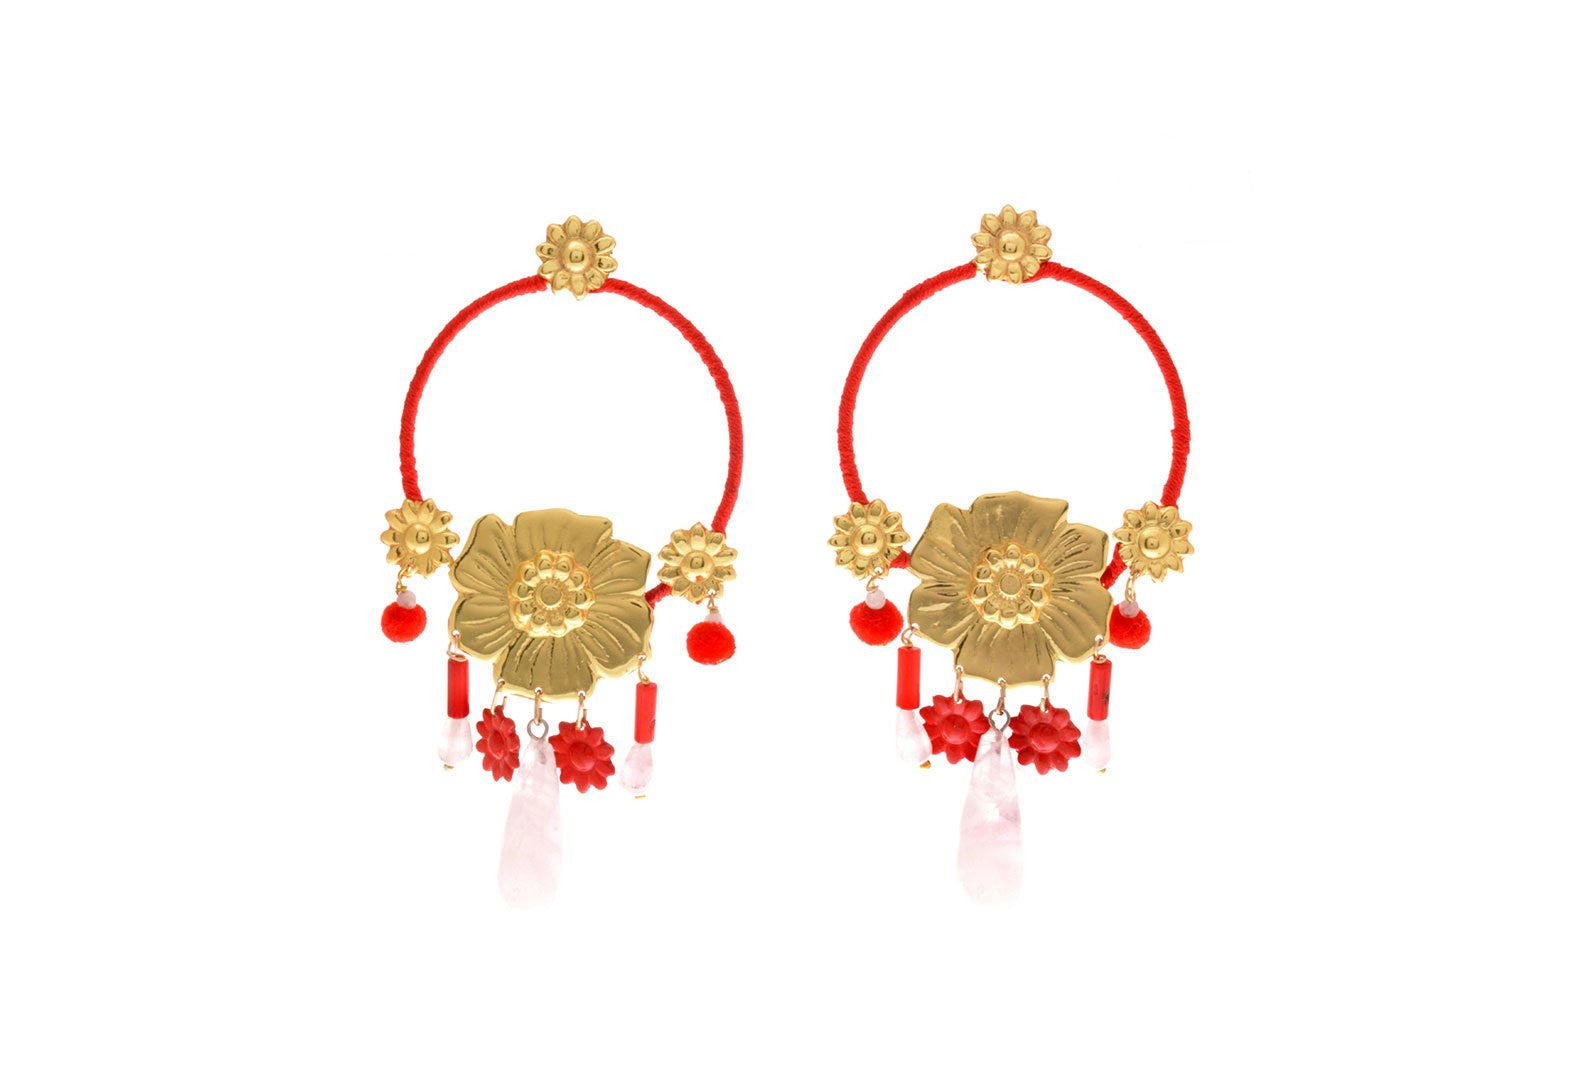 Jardin Secreto Earrings, Valentina Rosenthal Jewelry, Found By Lesetta